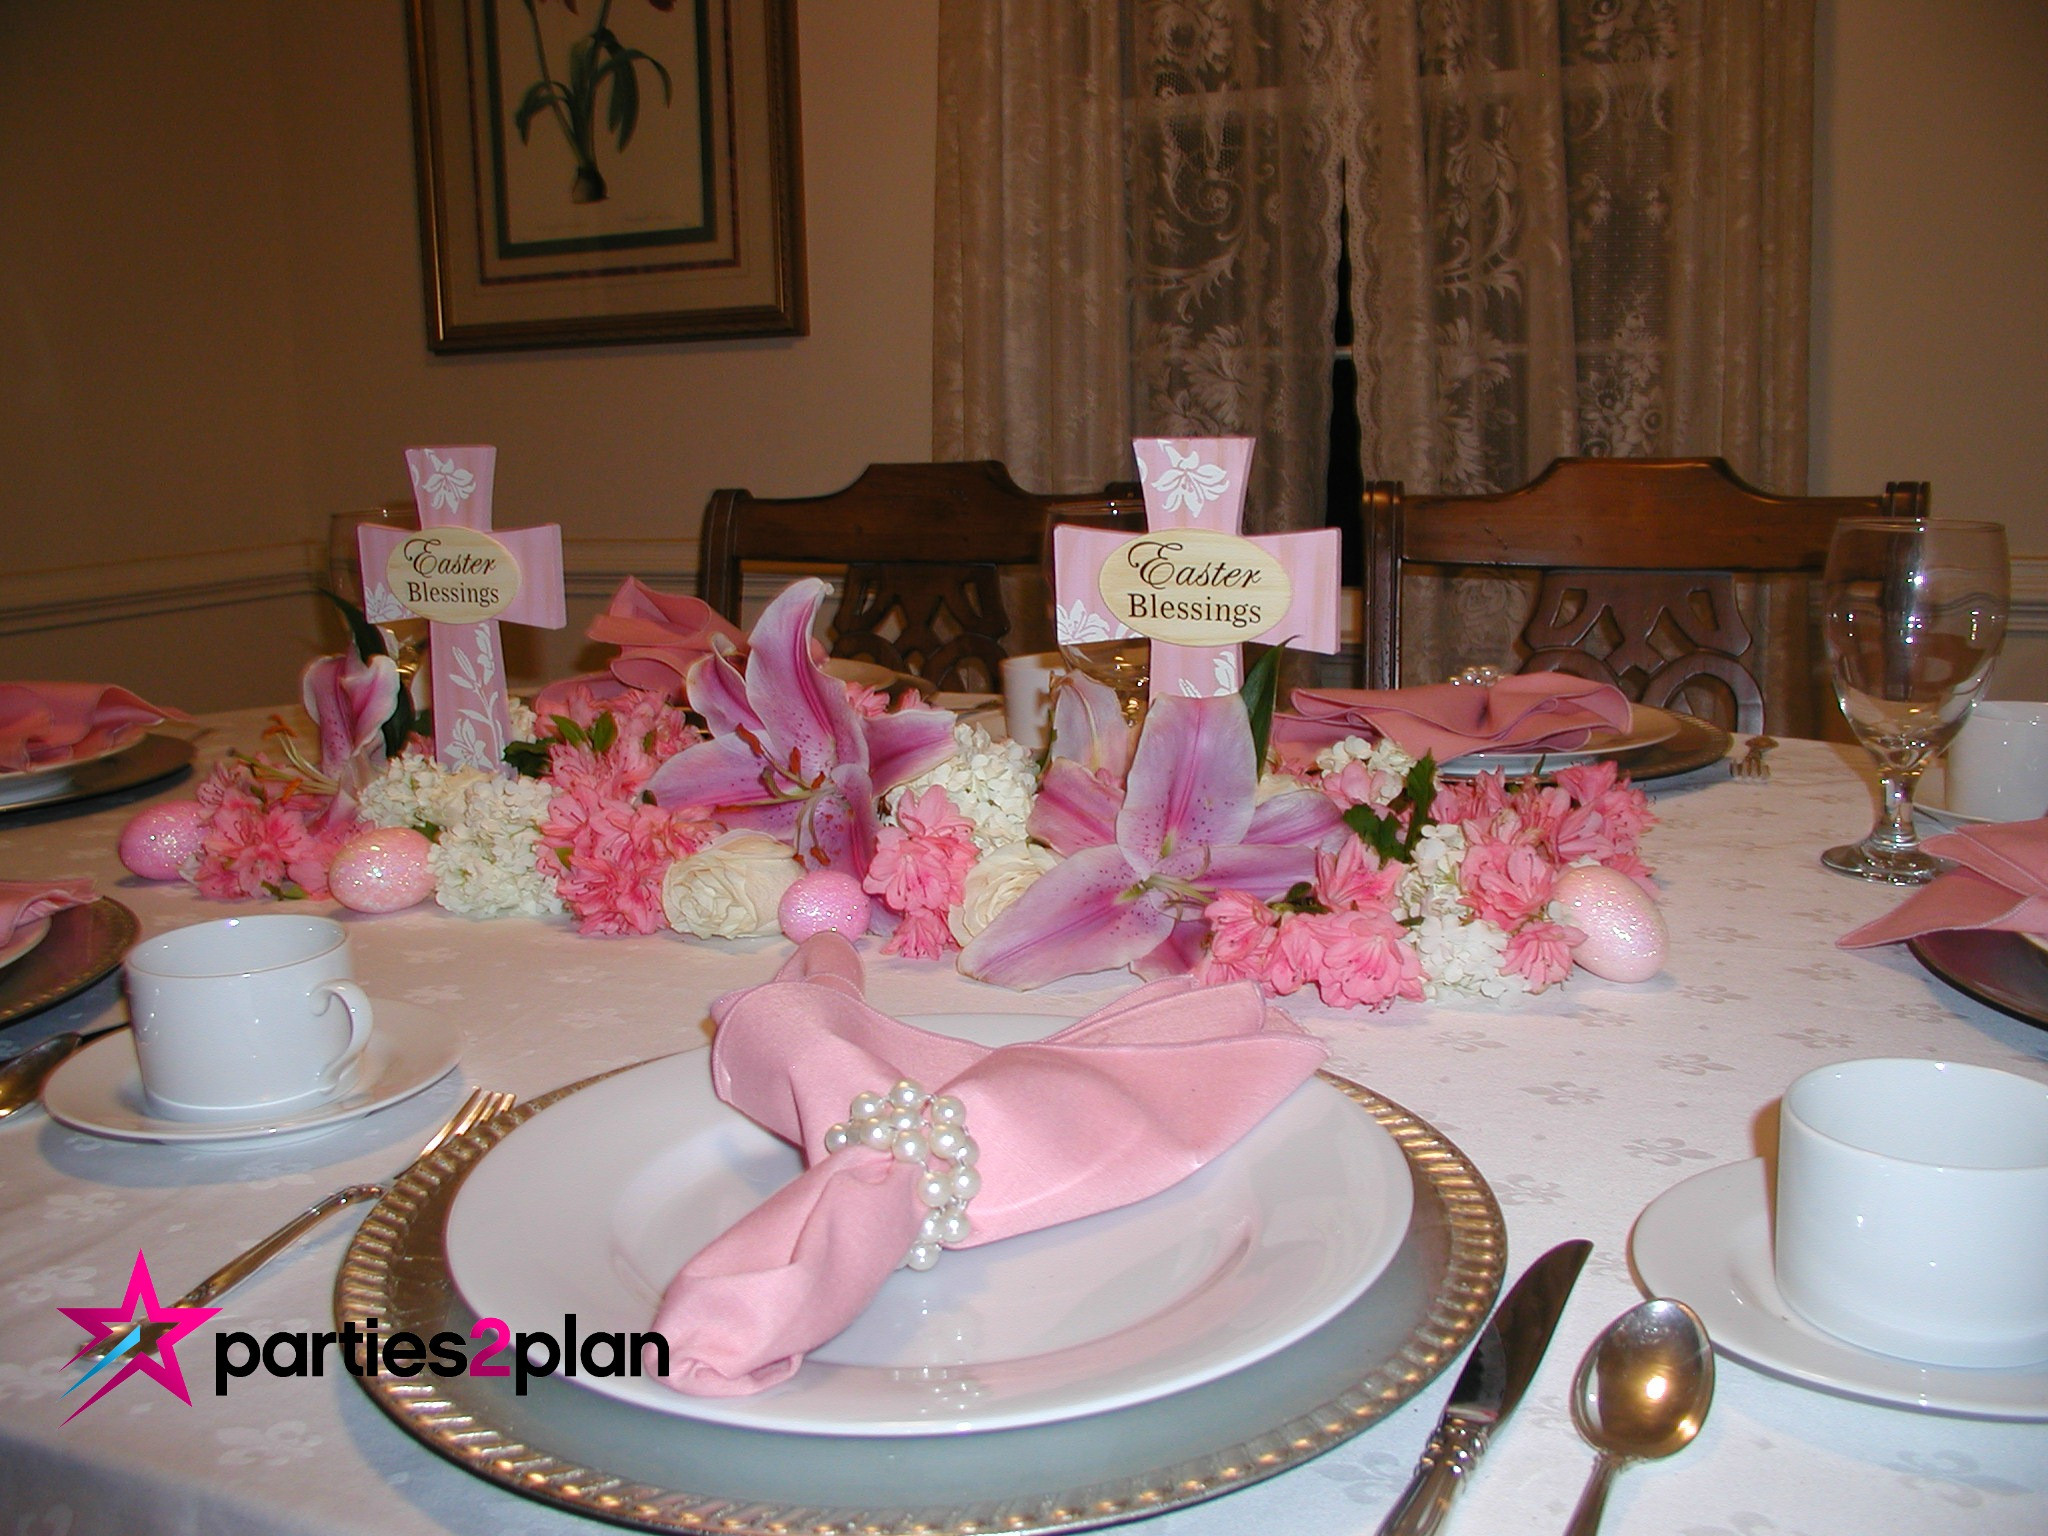 Easter Dinner Table Decorations  Tablescape Easter Dinner Table Decorations